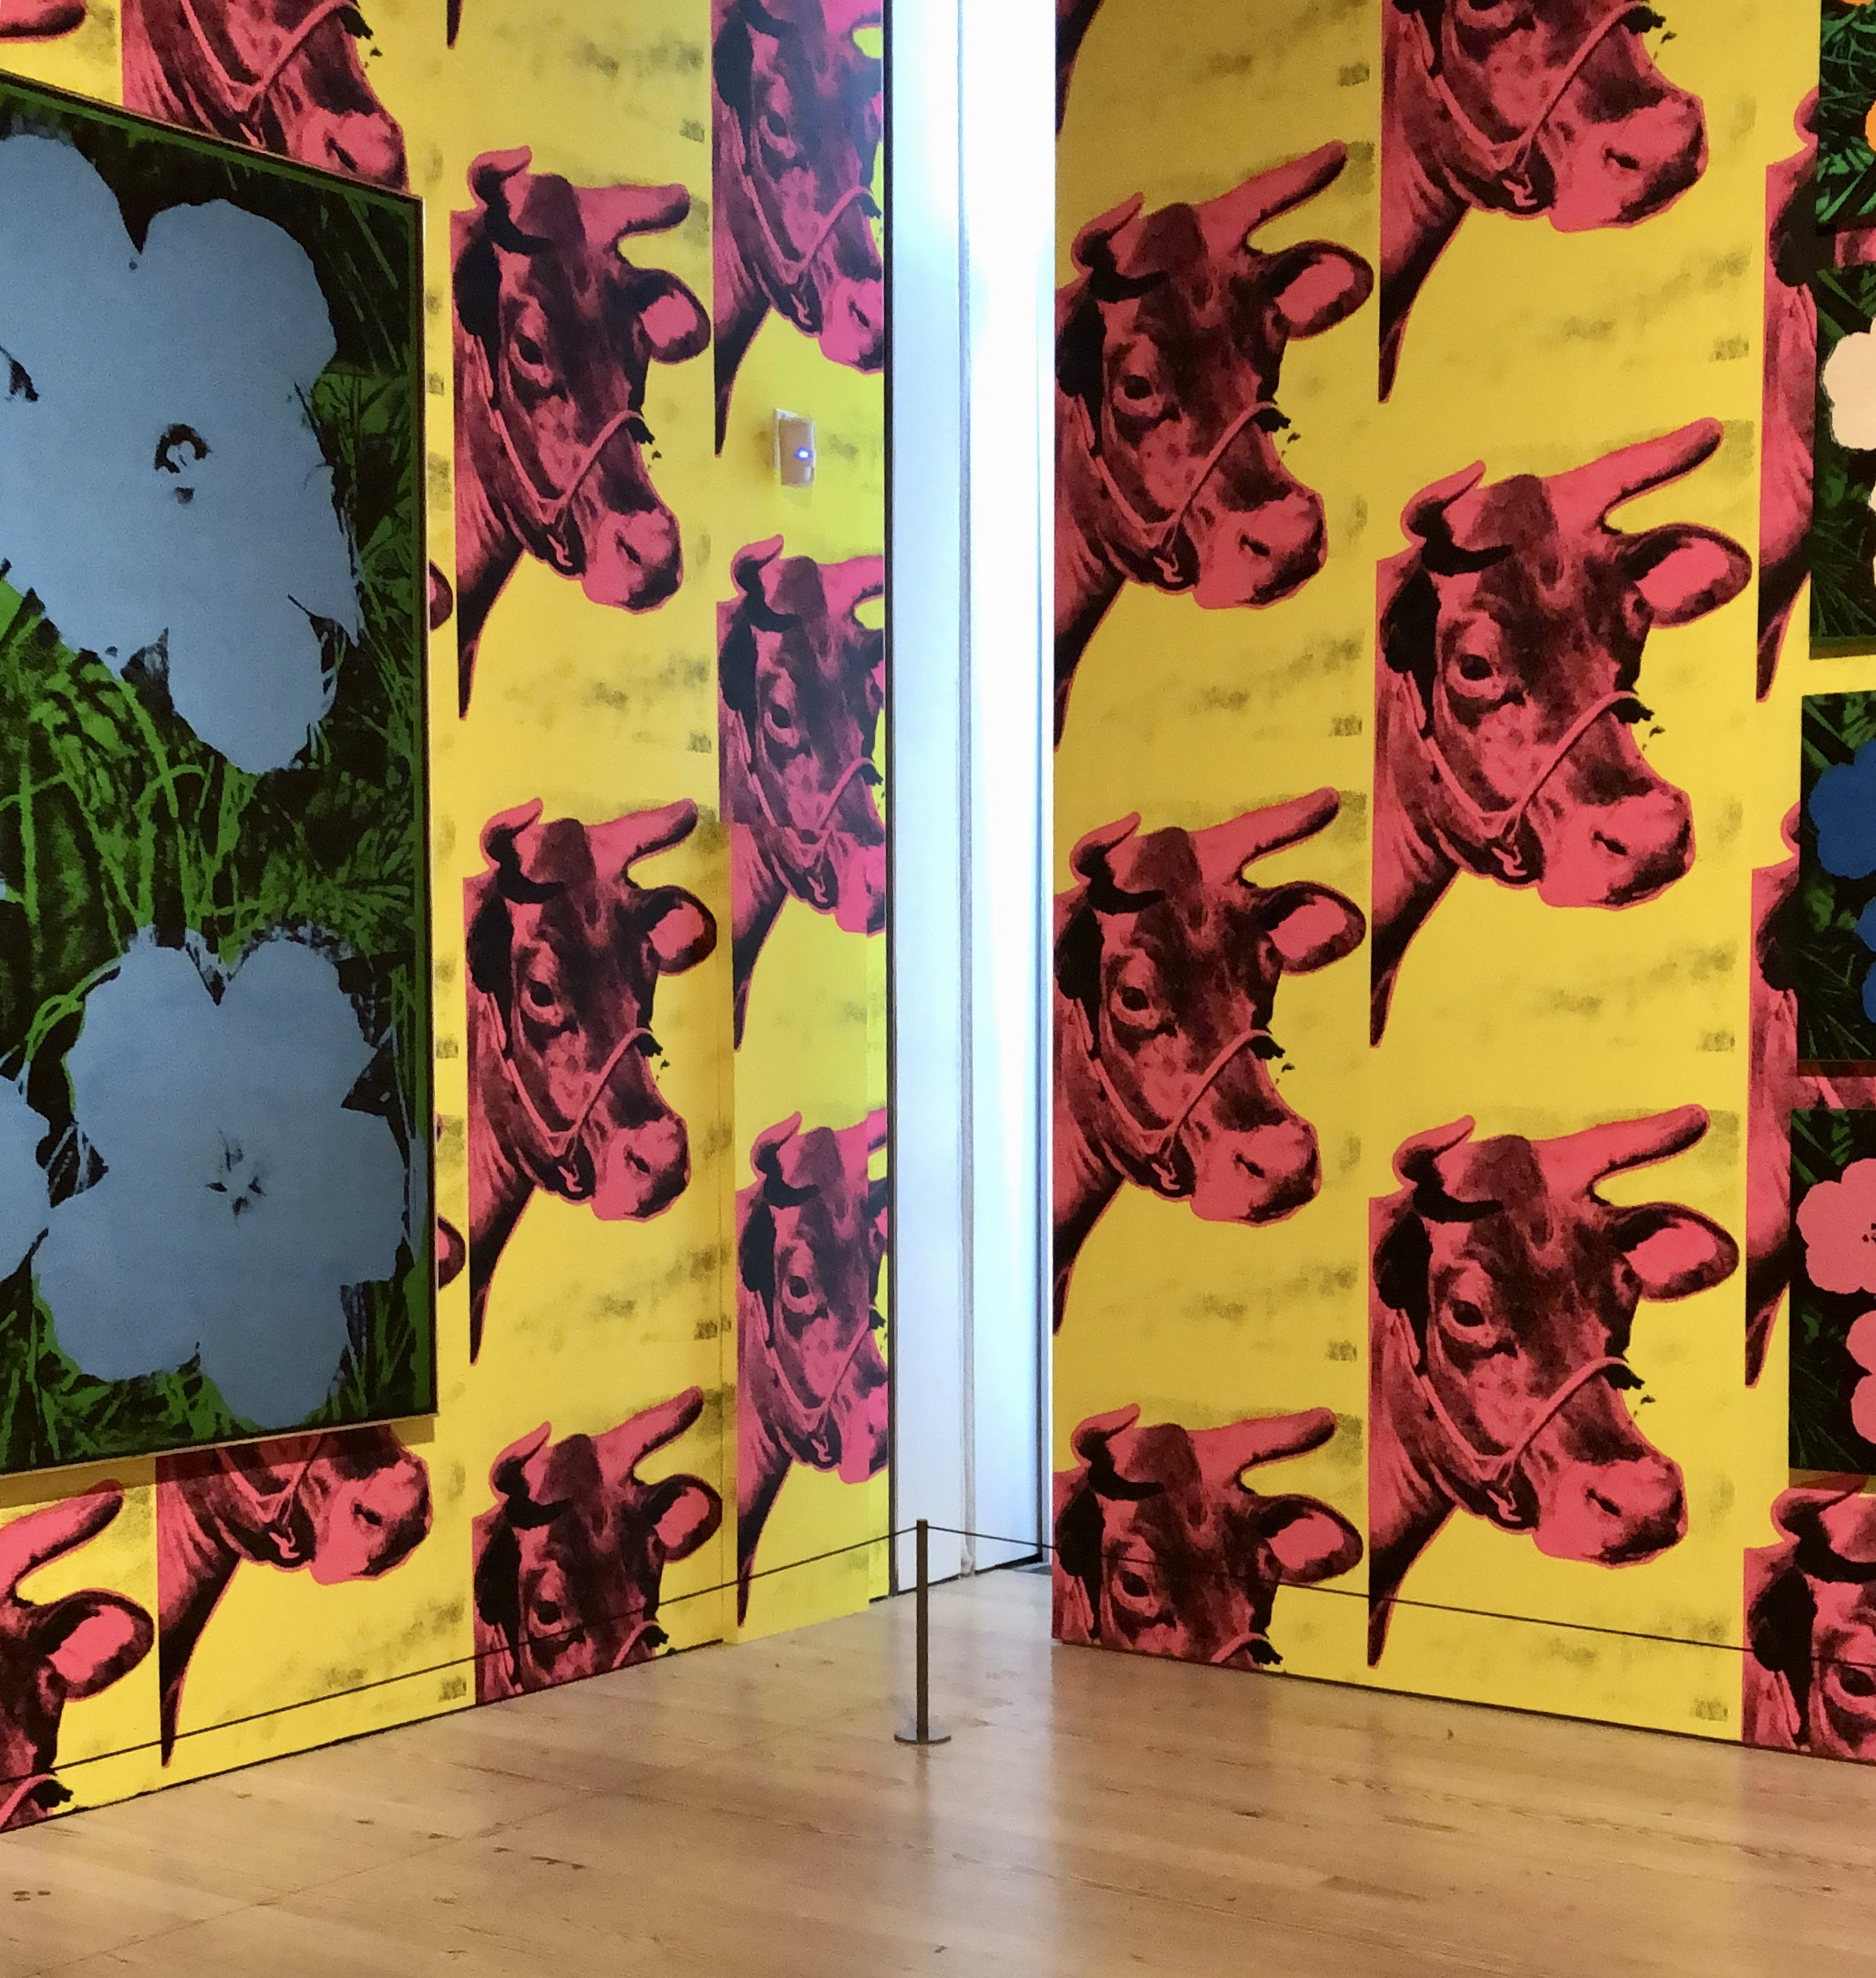 Andy Warhol—From A to B and Back Again exhibition at the Whitney Museum of American Art